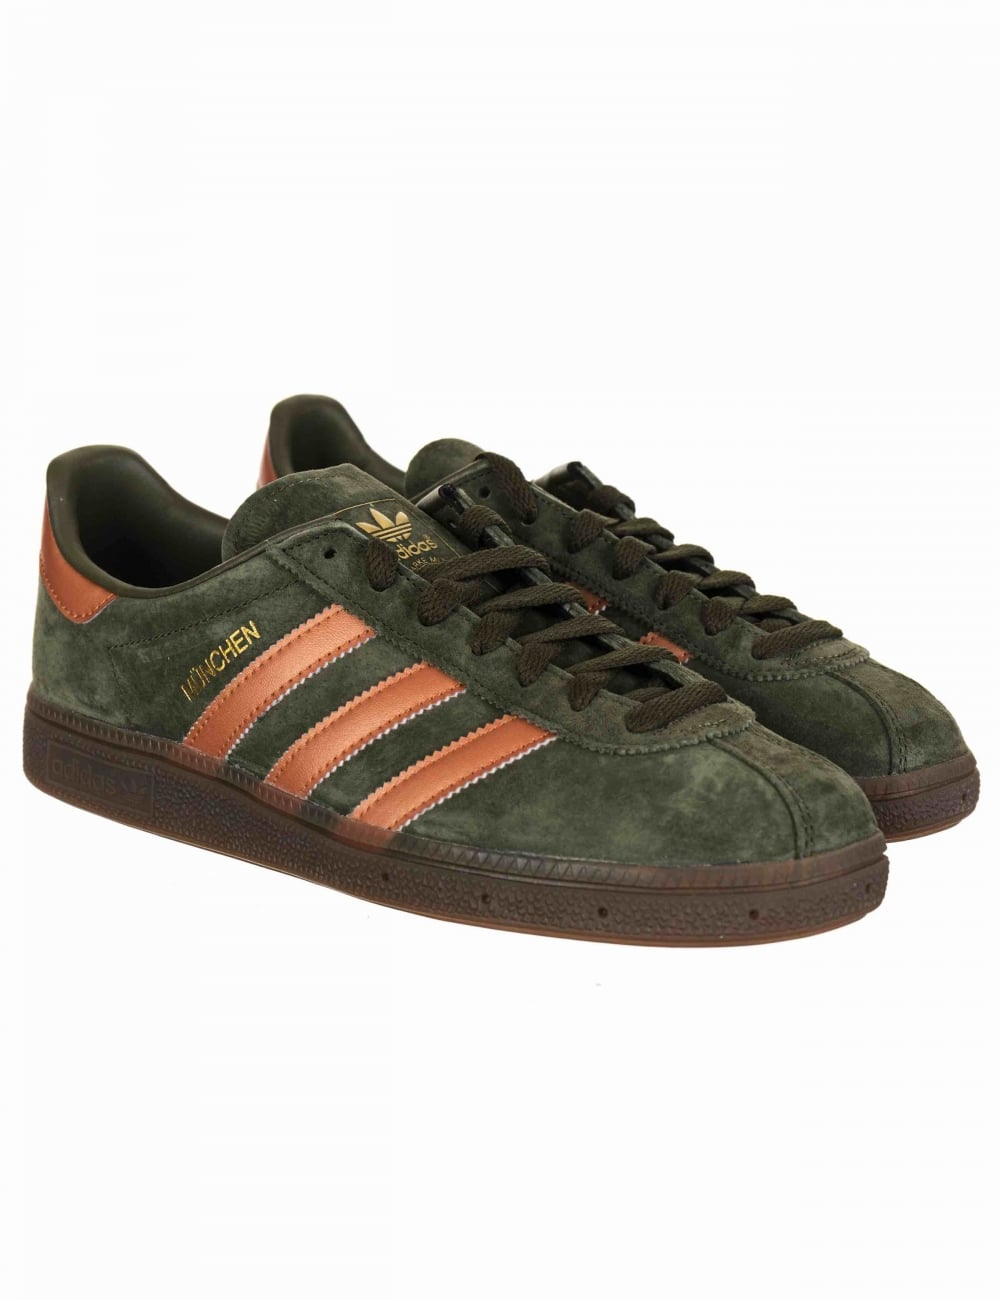 Munchen Shoes - Night Cargo/Bronze